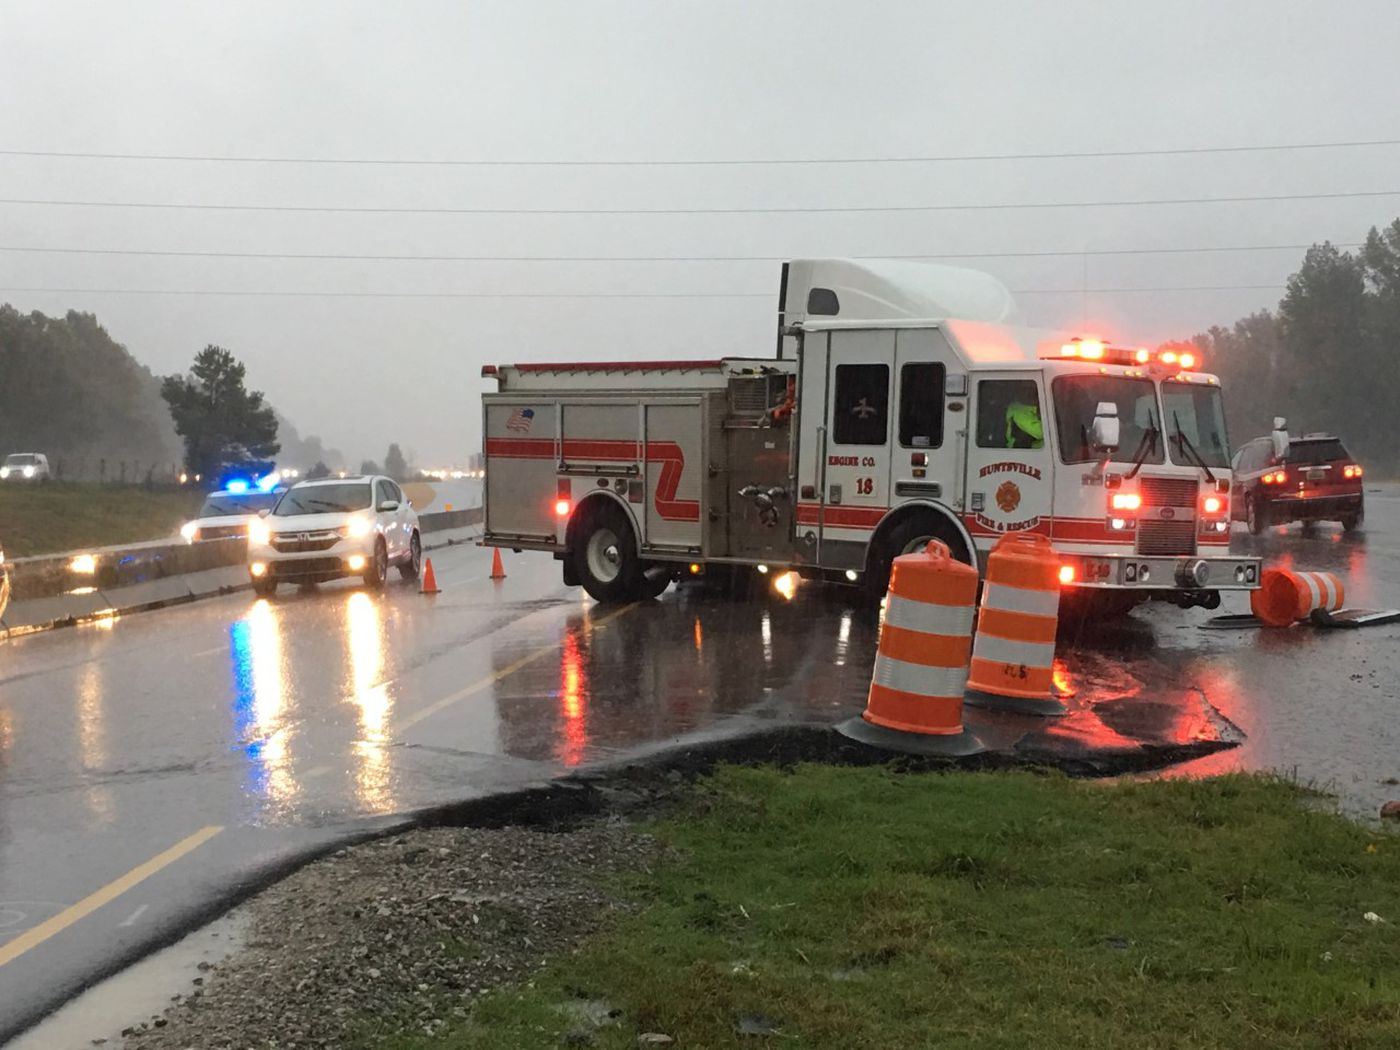 Another look at an accident involving a fire truck on I-565